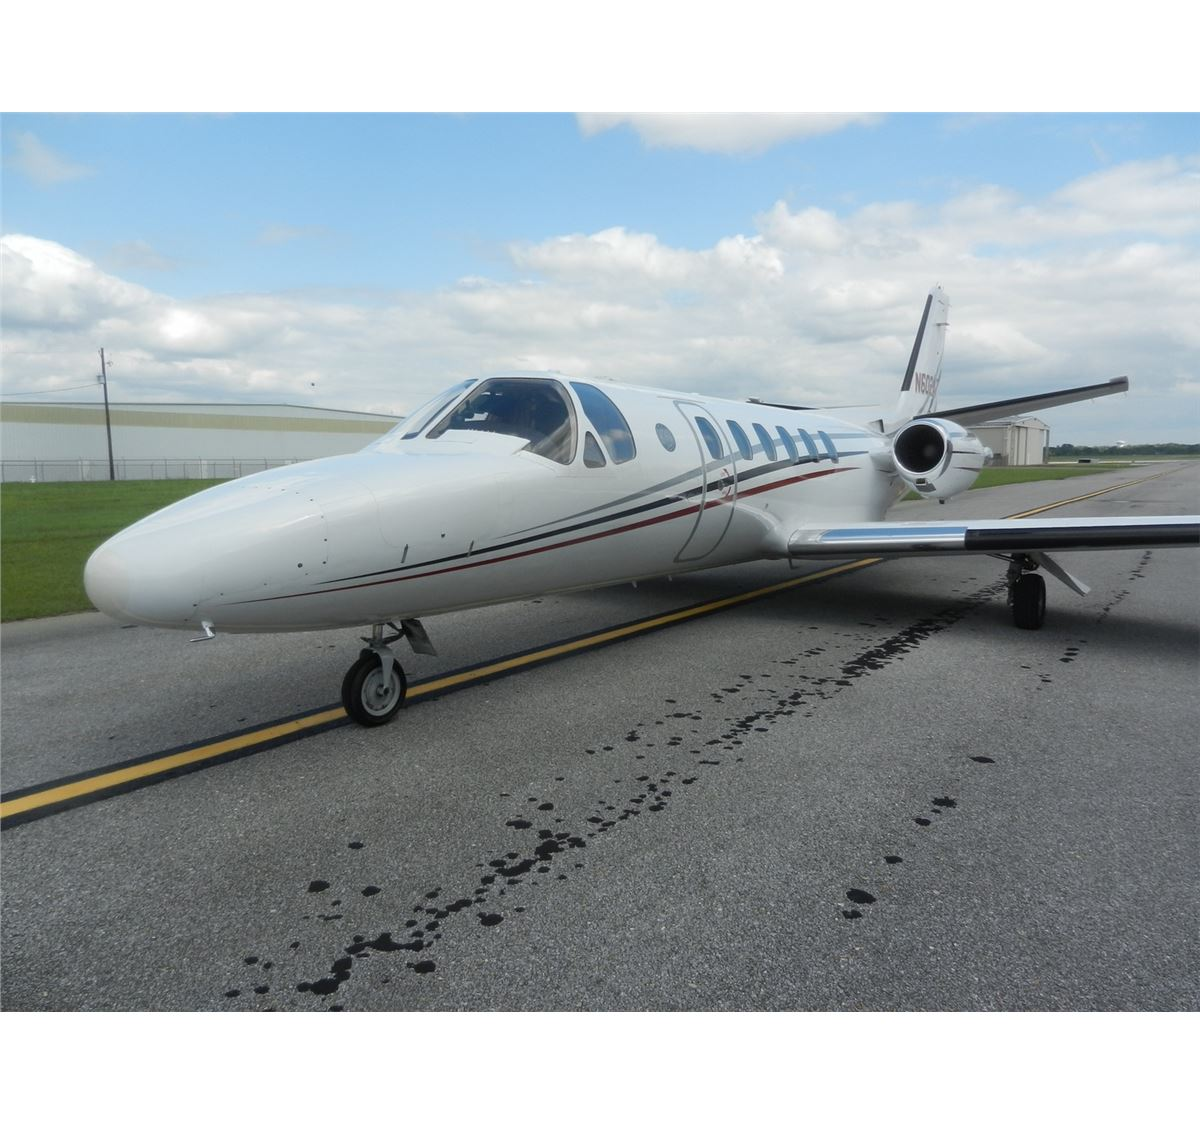 1989 CESSNA 550 CITATION II AIRCRAFT, S/N 5500606, 20,936 HOURS, COMES WITH  TOW BAR, AIRCRAFT HYDRAU